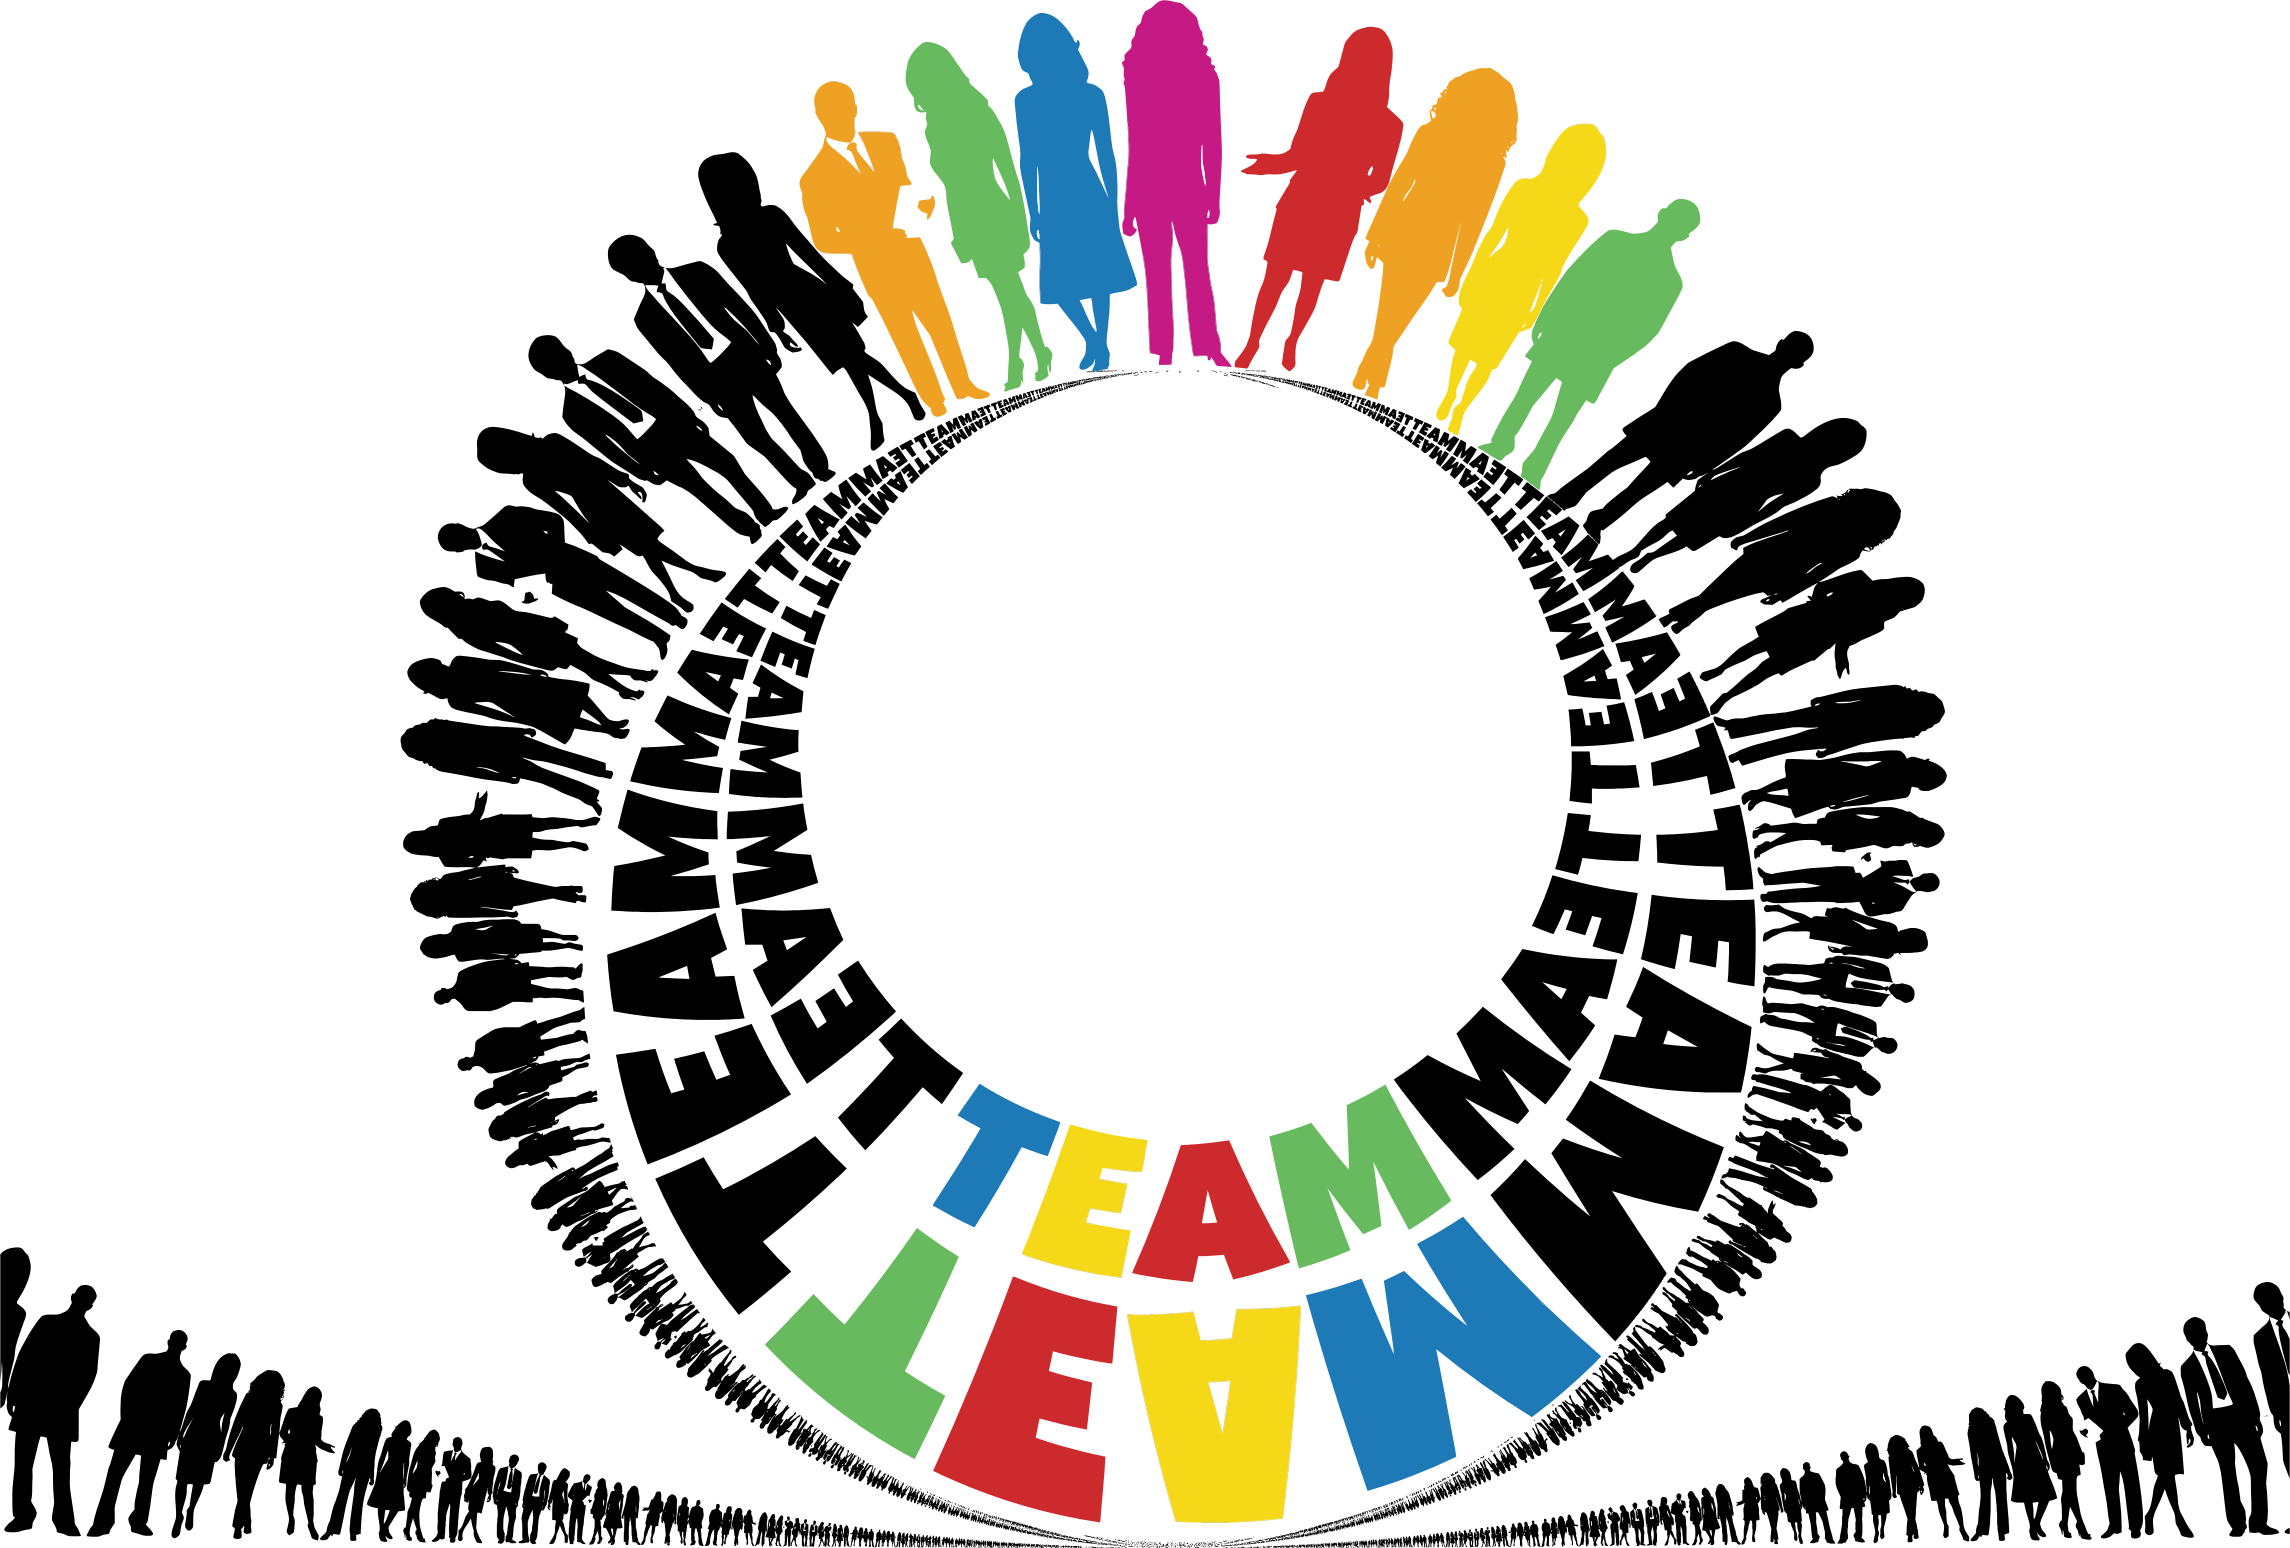 Working clipart team. Typography big image png